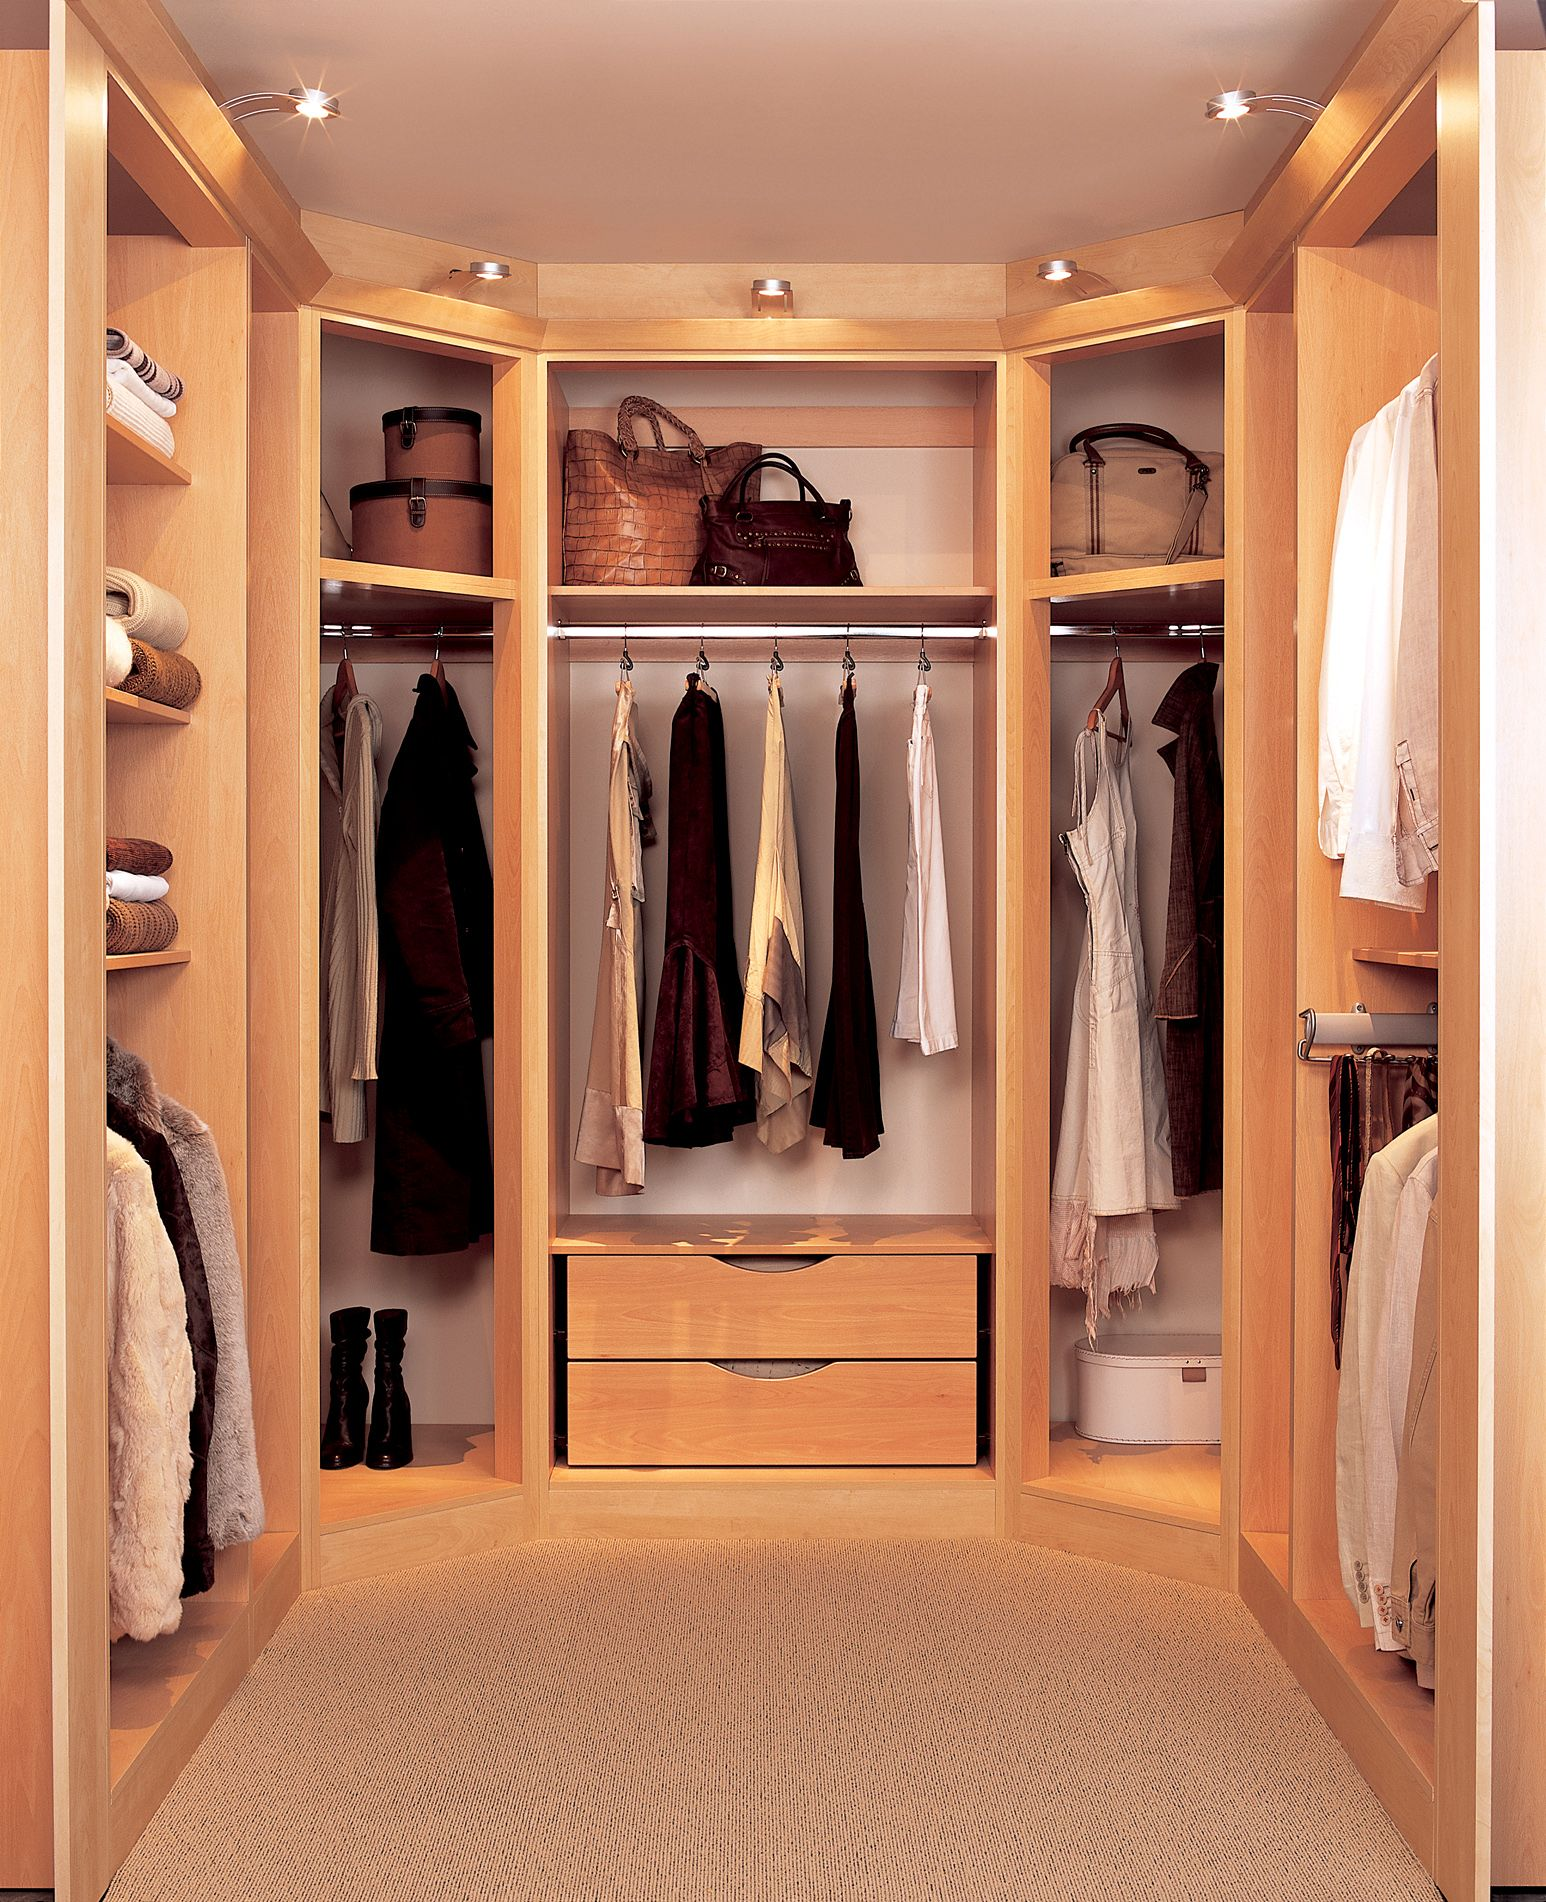 contemporary home depot closet organizers with modern lighting design - Closet Designs Home Depot